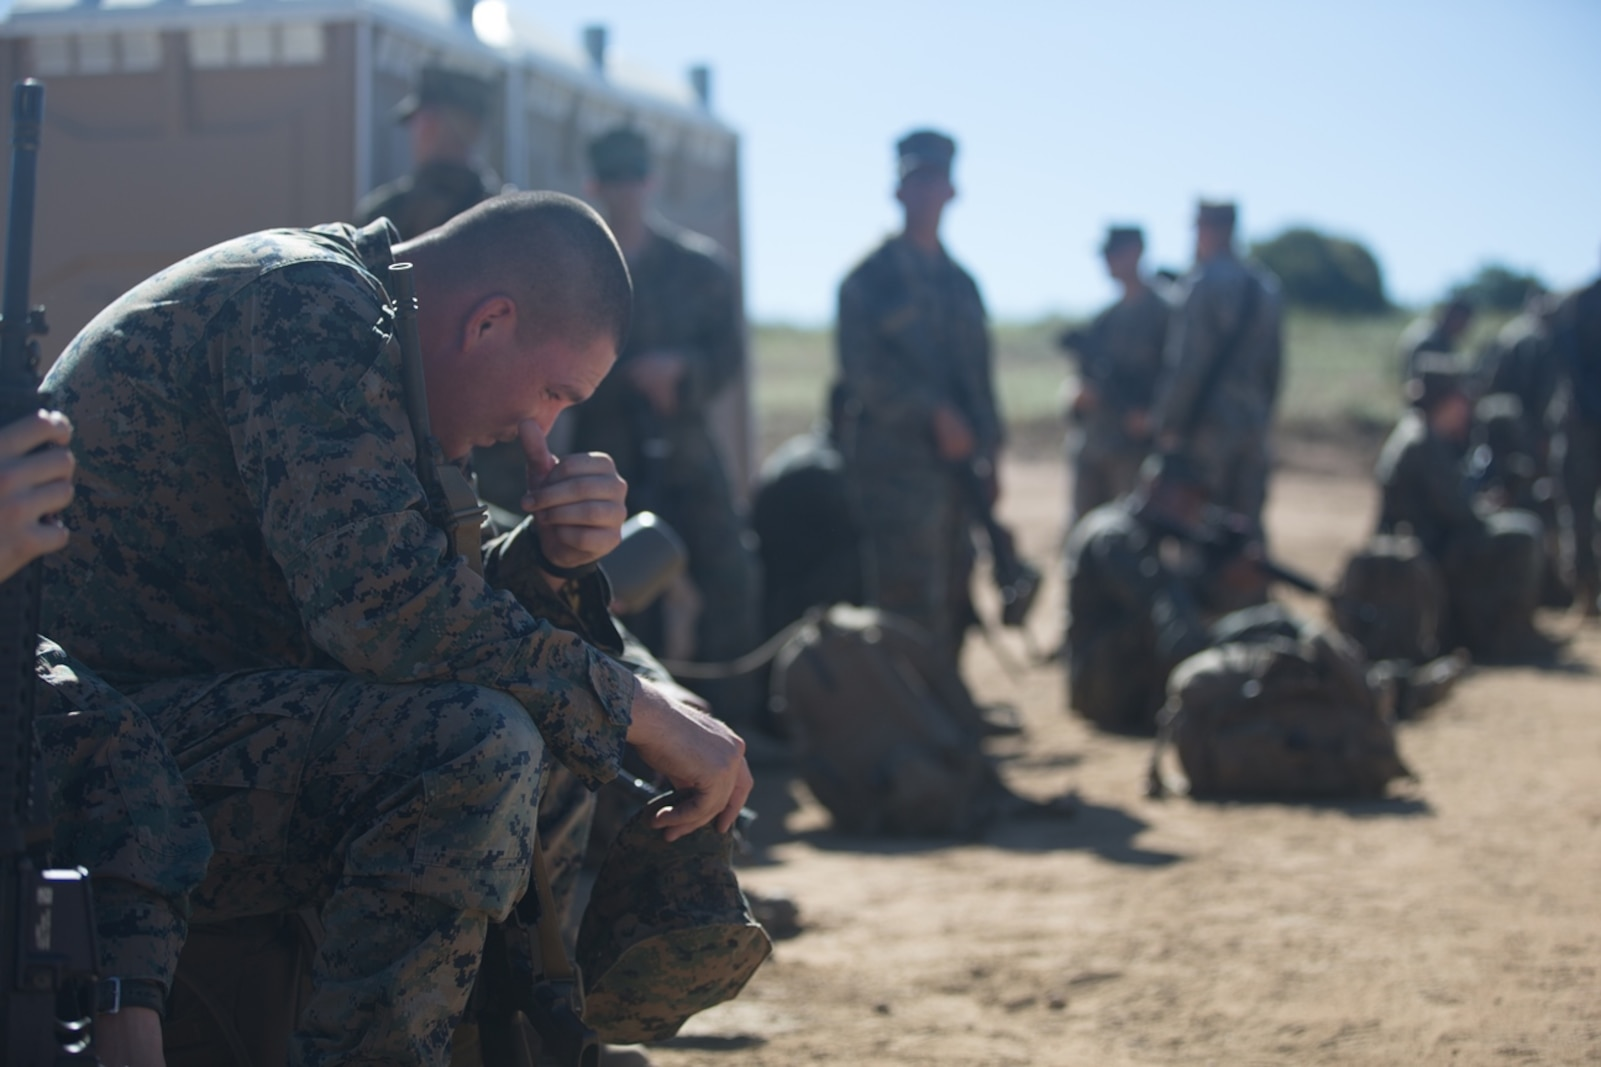 U.S. Marine Lance Cpl. Scott Patterson, an electronic maintainer with Combat Logistics Battalion 5, Headquarters Regiment, 1st Marine Logistics Group, pauses during a seven mile conditioning hike on Camp Pendleton, Calif., June 27, 2017. The Marines have multiple conditioning hikes to prepare for Mountain Exercise 4-17 which will be conducted at the Marine Corps Mountain Warfare Training Center in Bridgeport, Calif. (U.S. Marine Corps photo by Lance Cpl. Timothy Shoemaker)